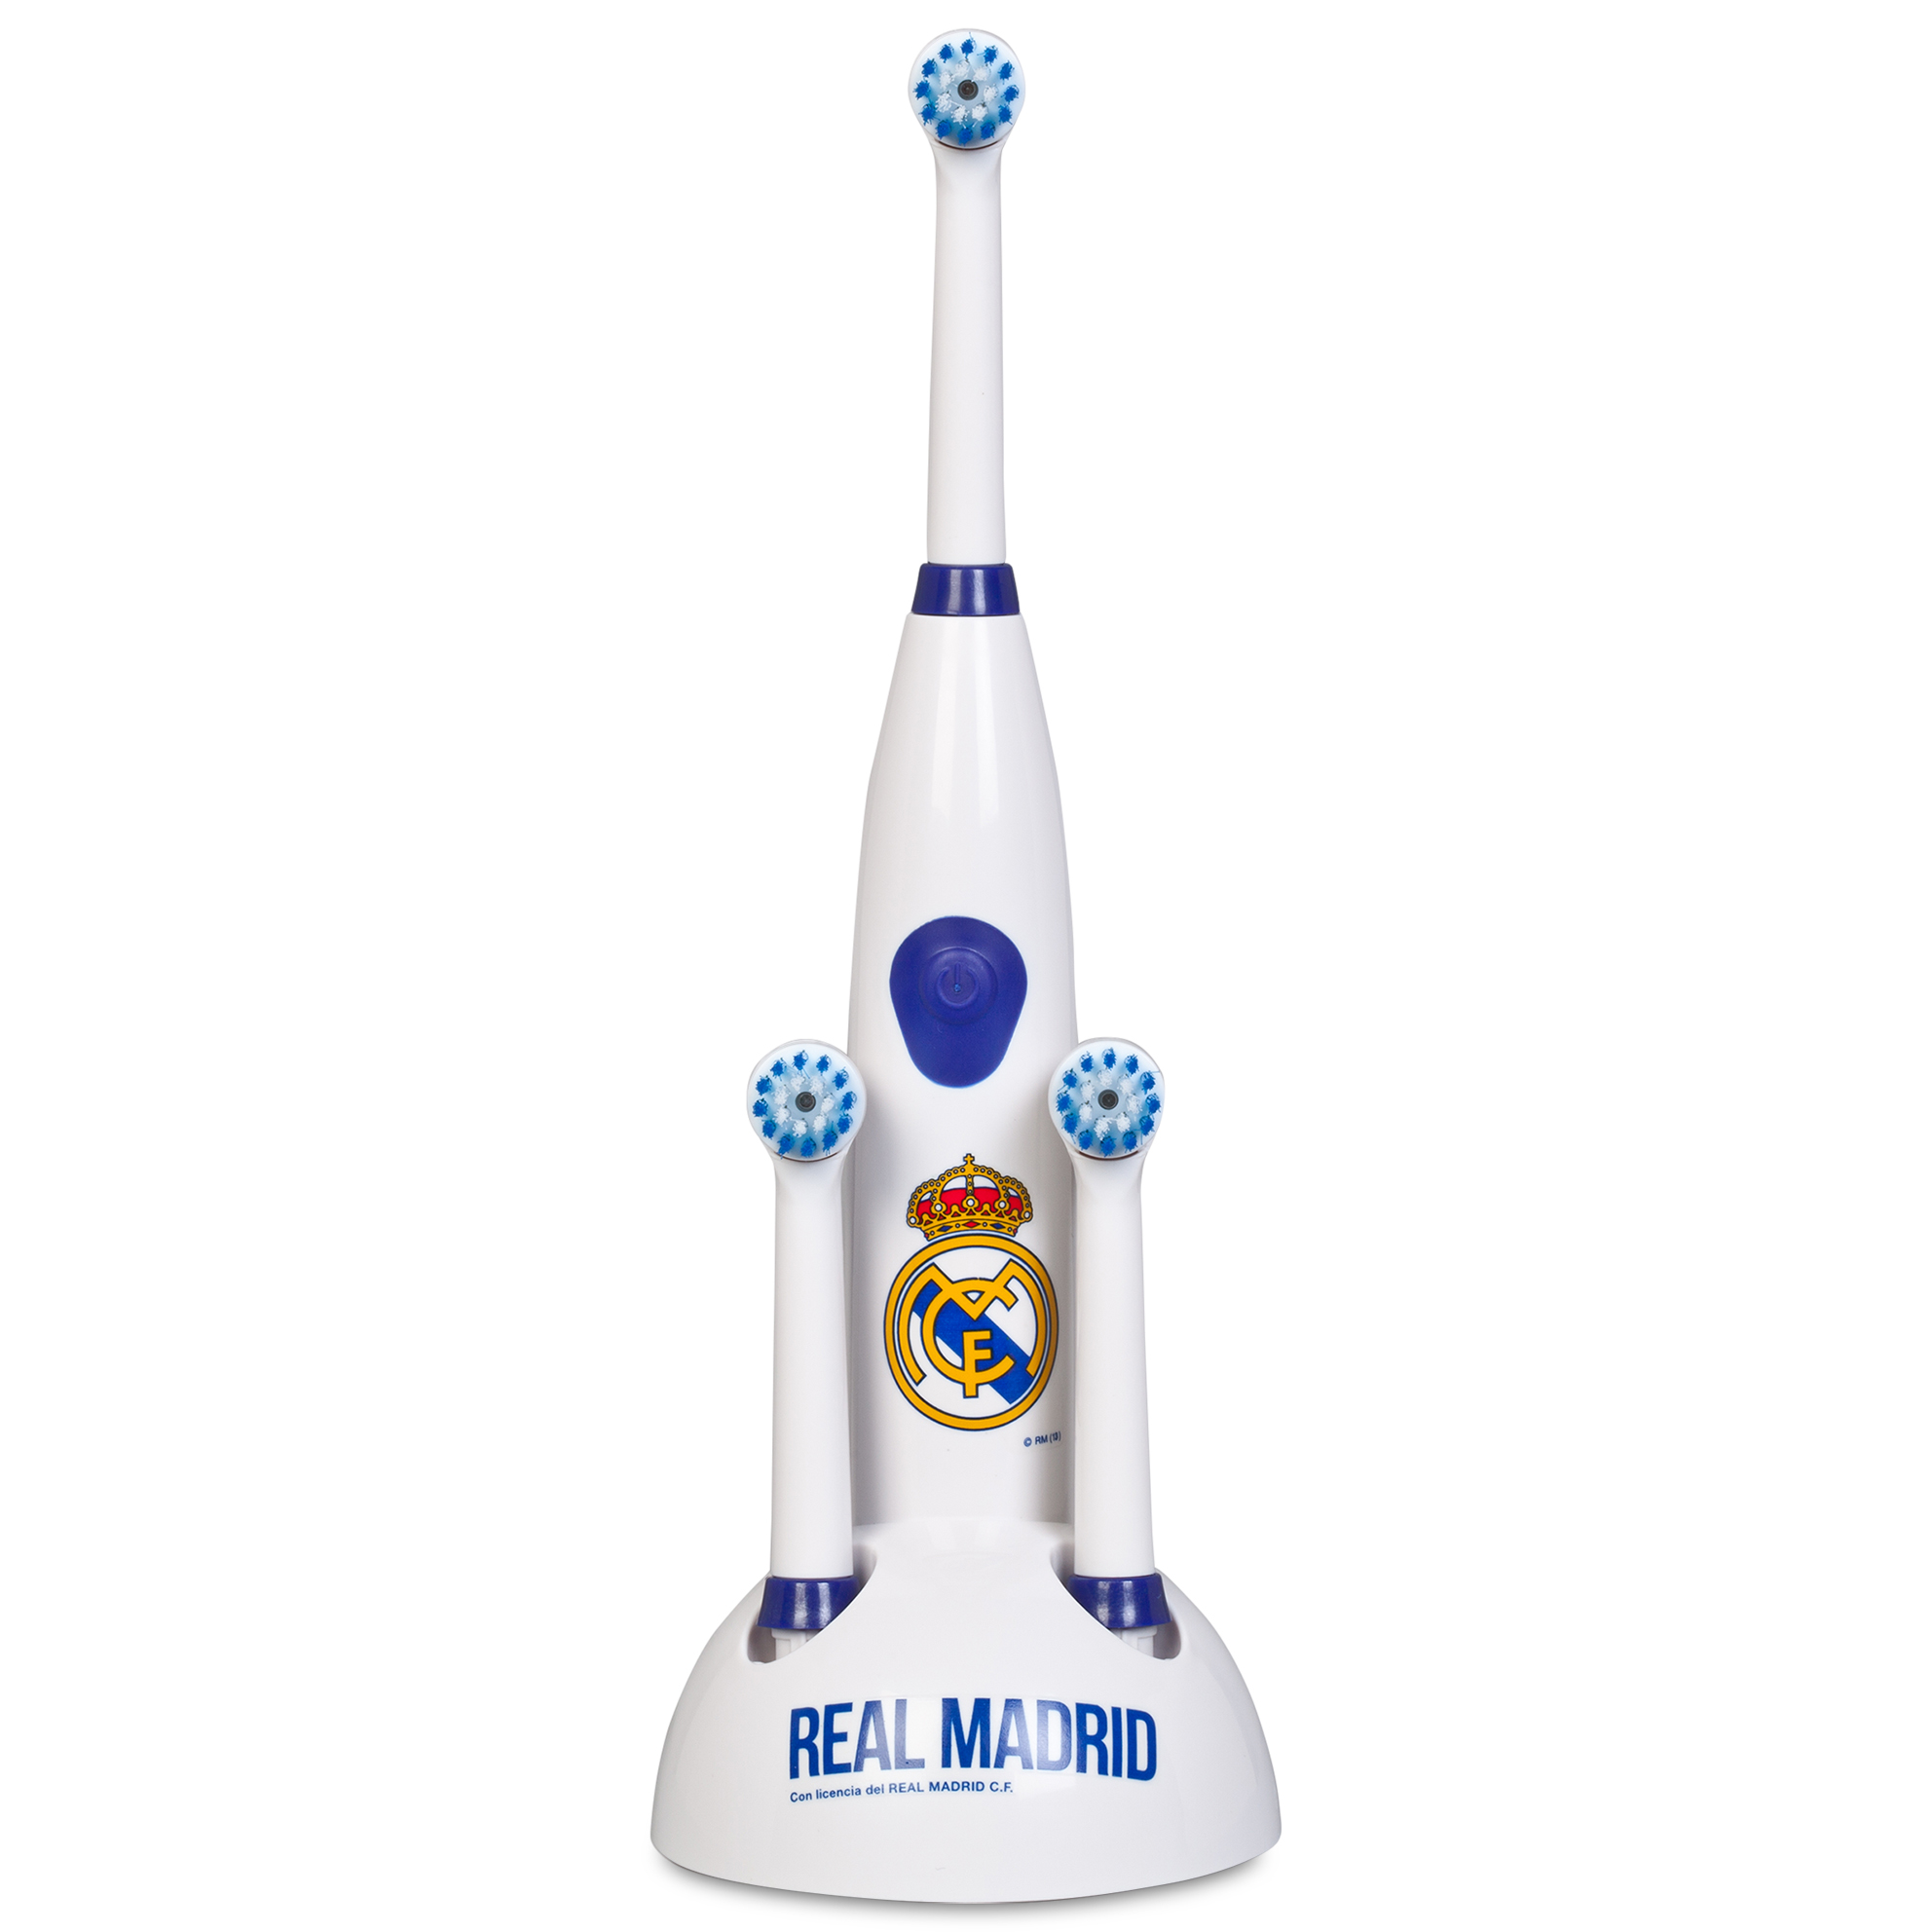 Real Madrid Electric Toothbrush Set